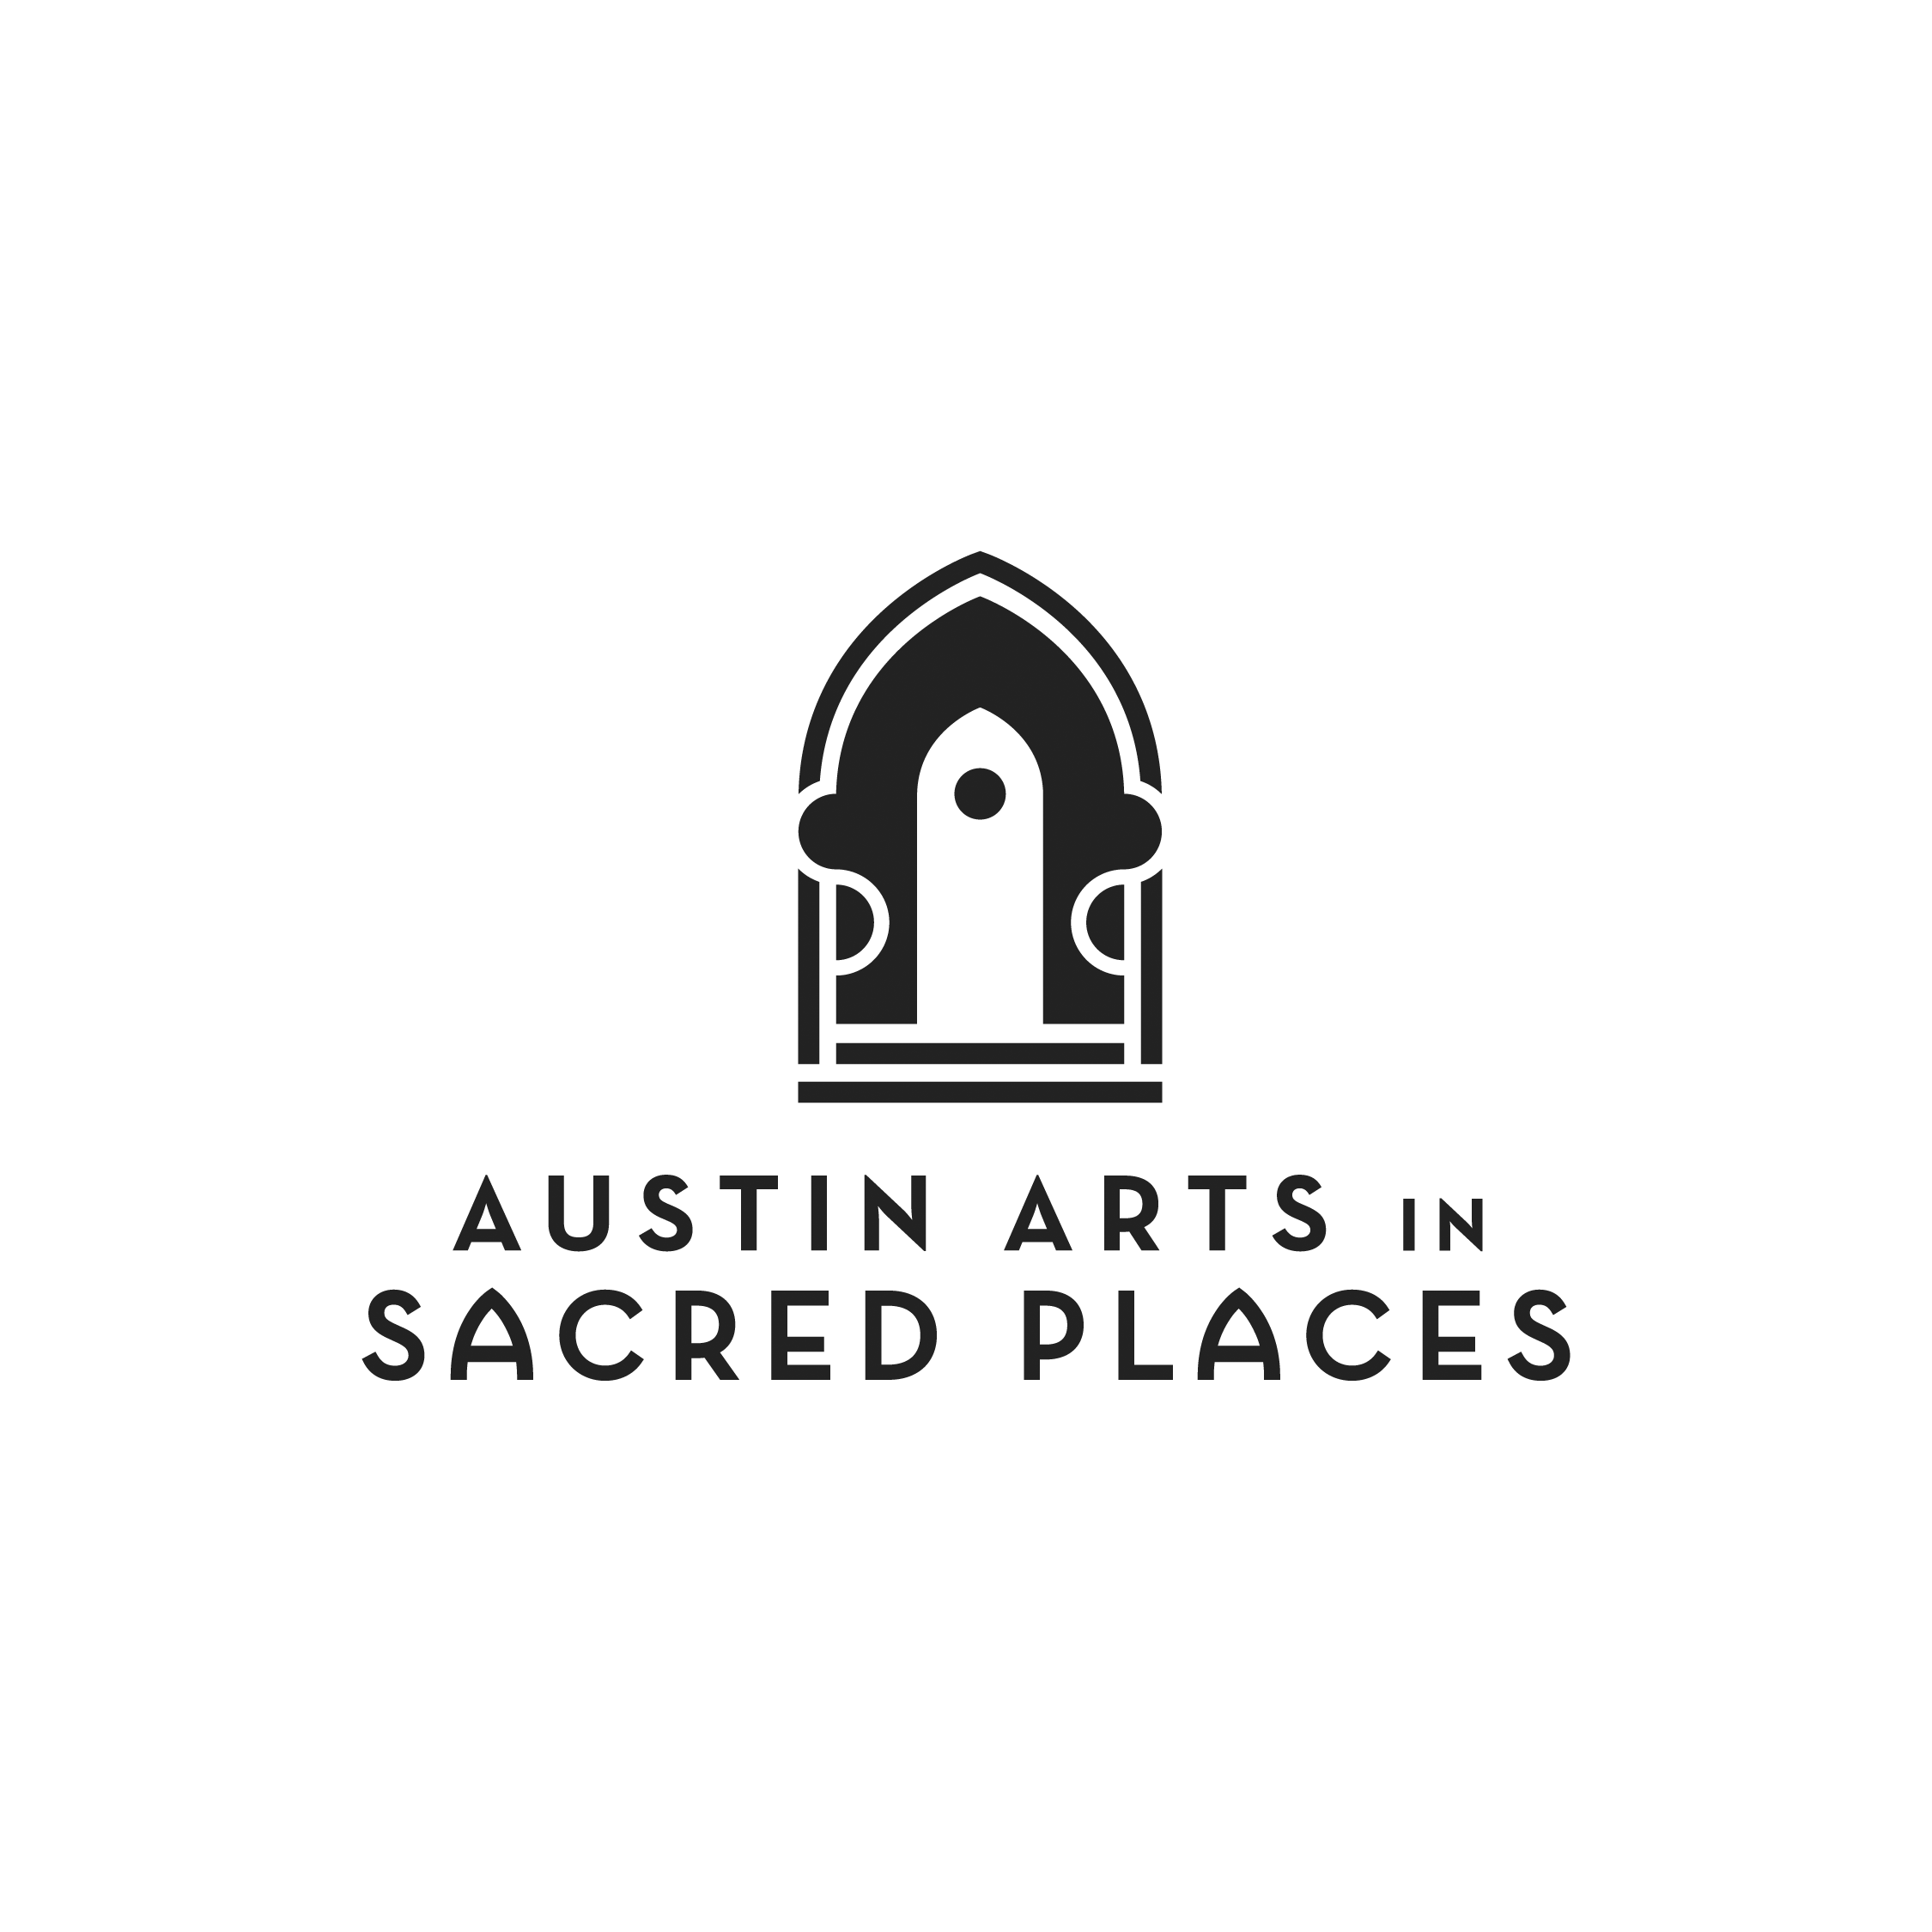 Austin Arts in Sacred Places Logo BW small.png